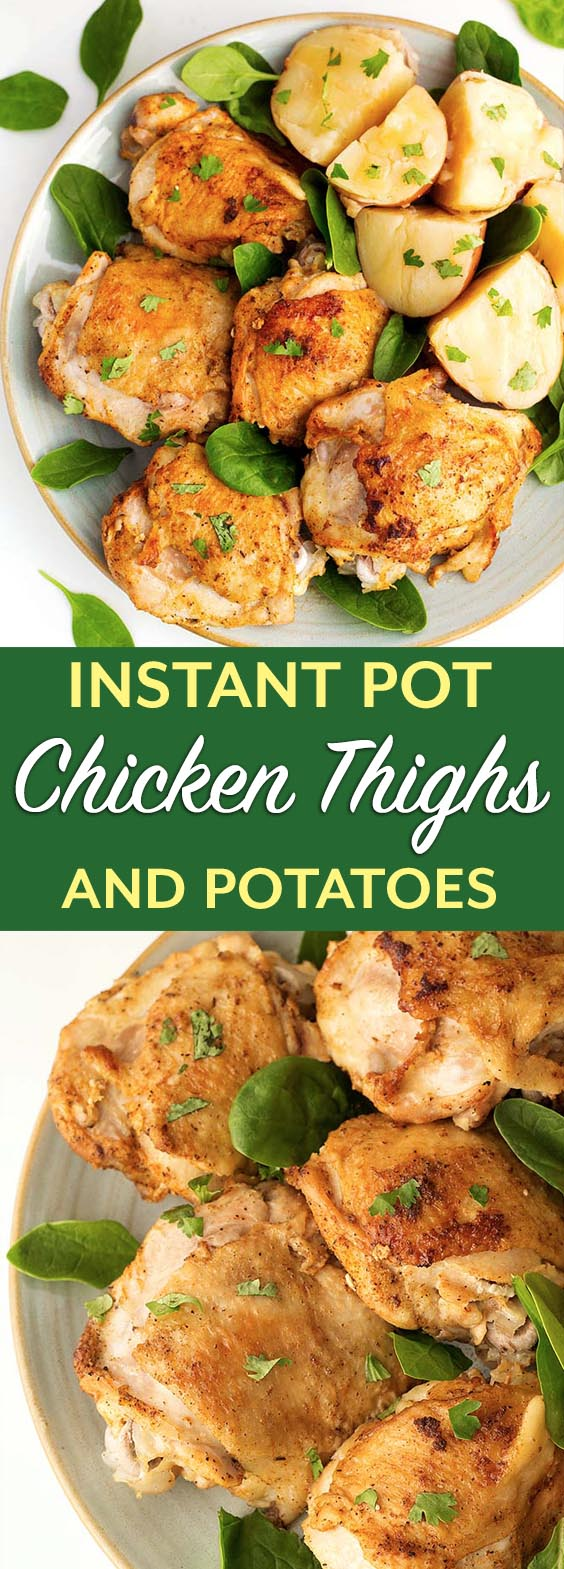 Instant Pot Chicken Thighs are cooked together with the Potatoes for a nice simple one pot meal. Pressure cooker chicken thighs and potatoes. simplyhappyfoodie.com #instantpotchicken #nstantpotchickenthighs